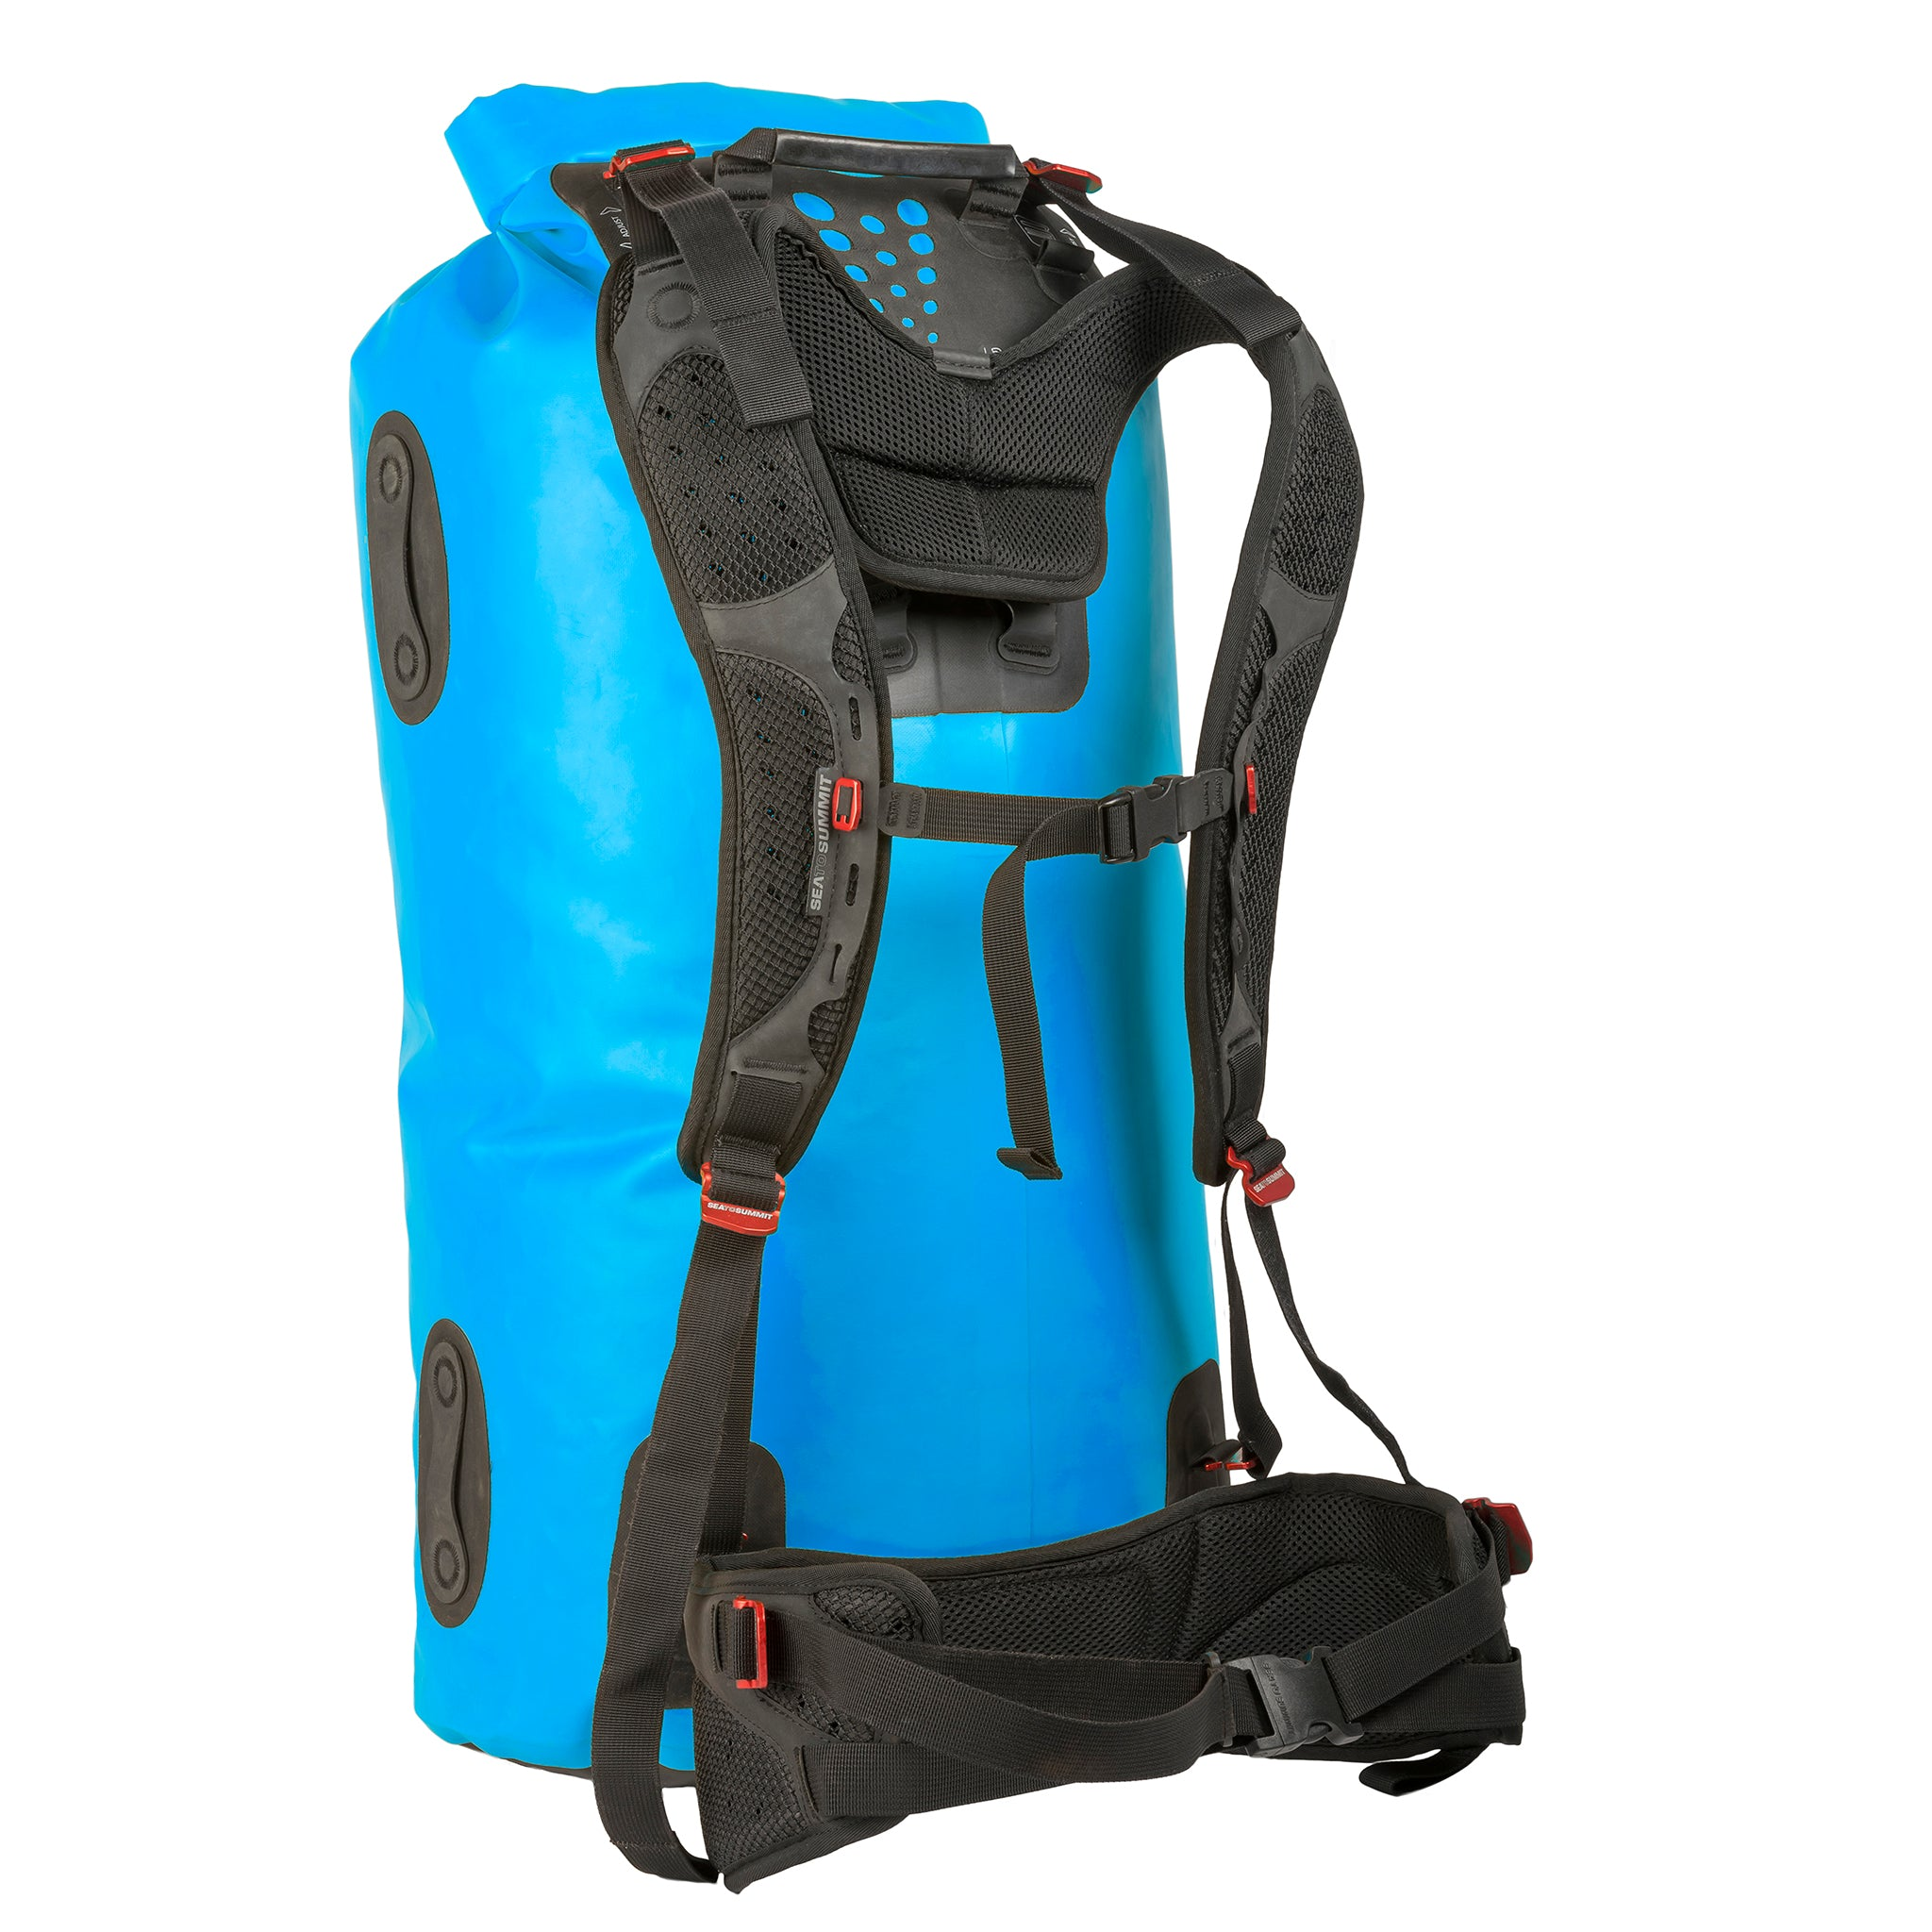 Hydraulic Dry Pack bag _ 120 liter _ blue